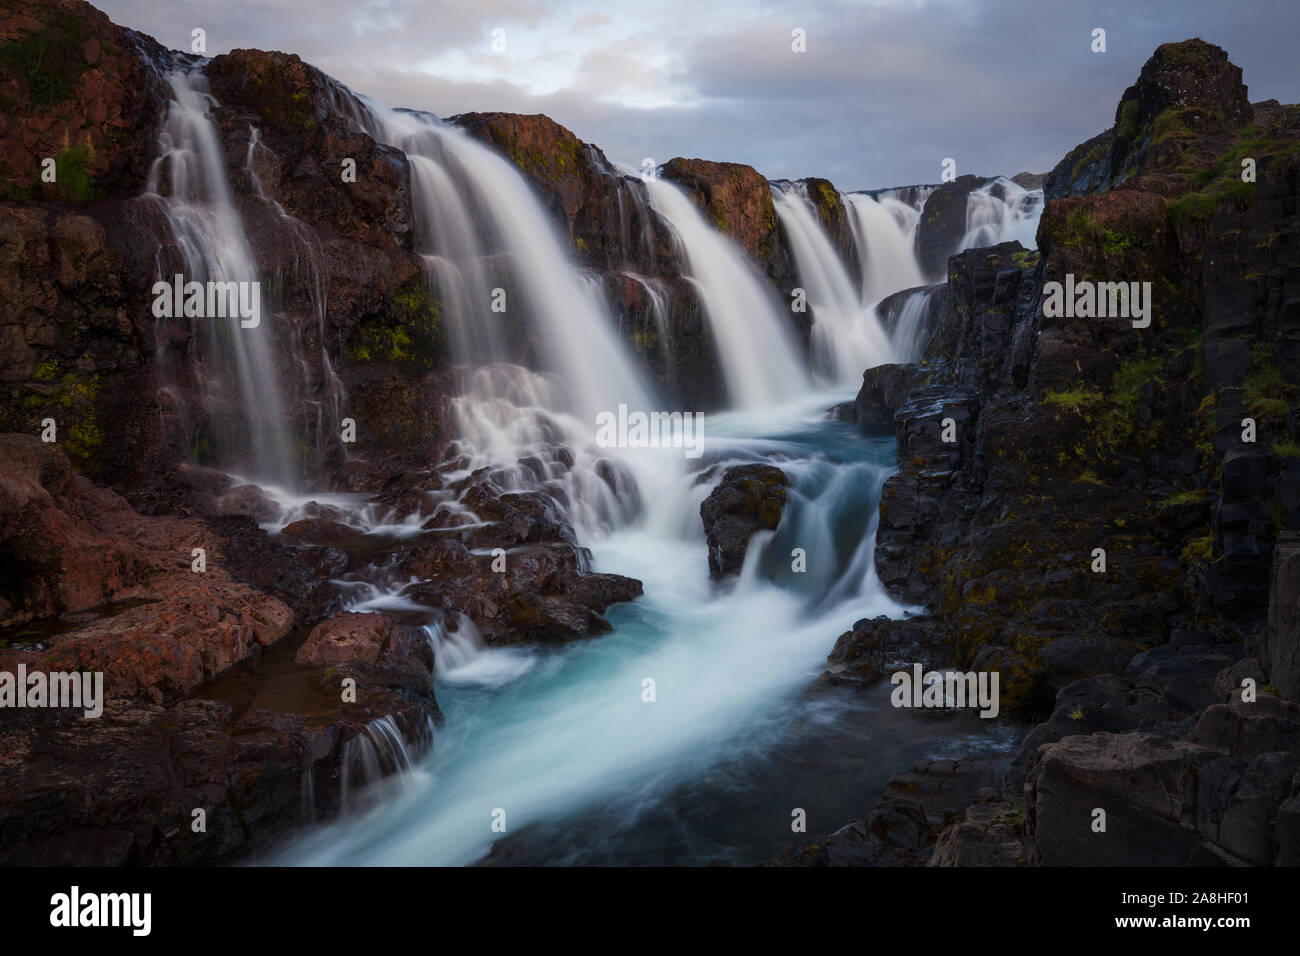 One of my favorite waterfalls in Iceland. Red rocks and blue water. Amazing contrasts... Stock Photo